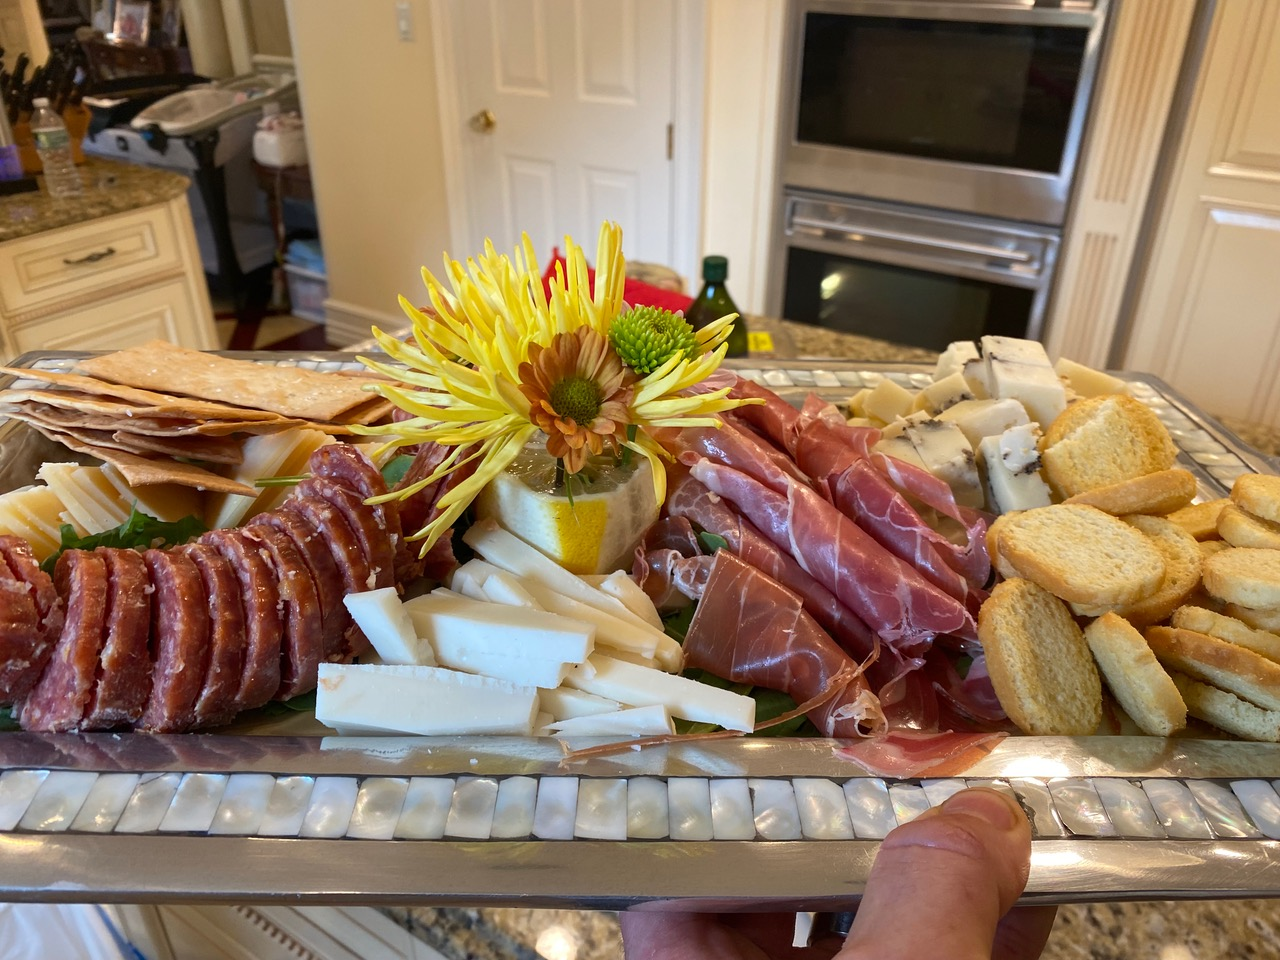 NY Catering Service: Gourmet BBQ to canapé and cocktail experiences